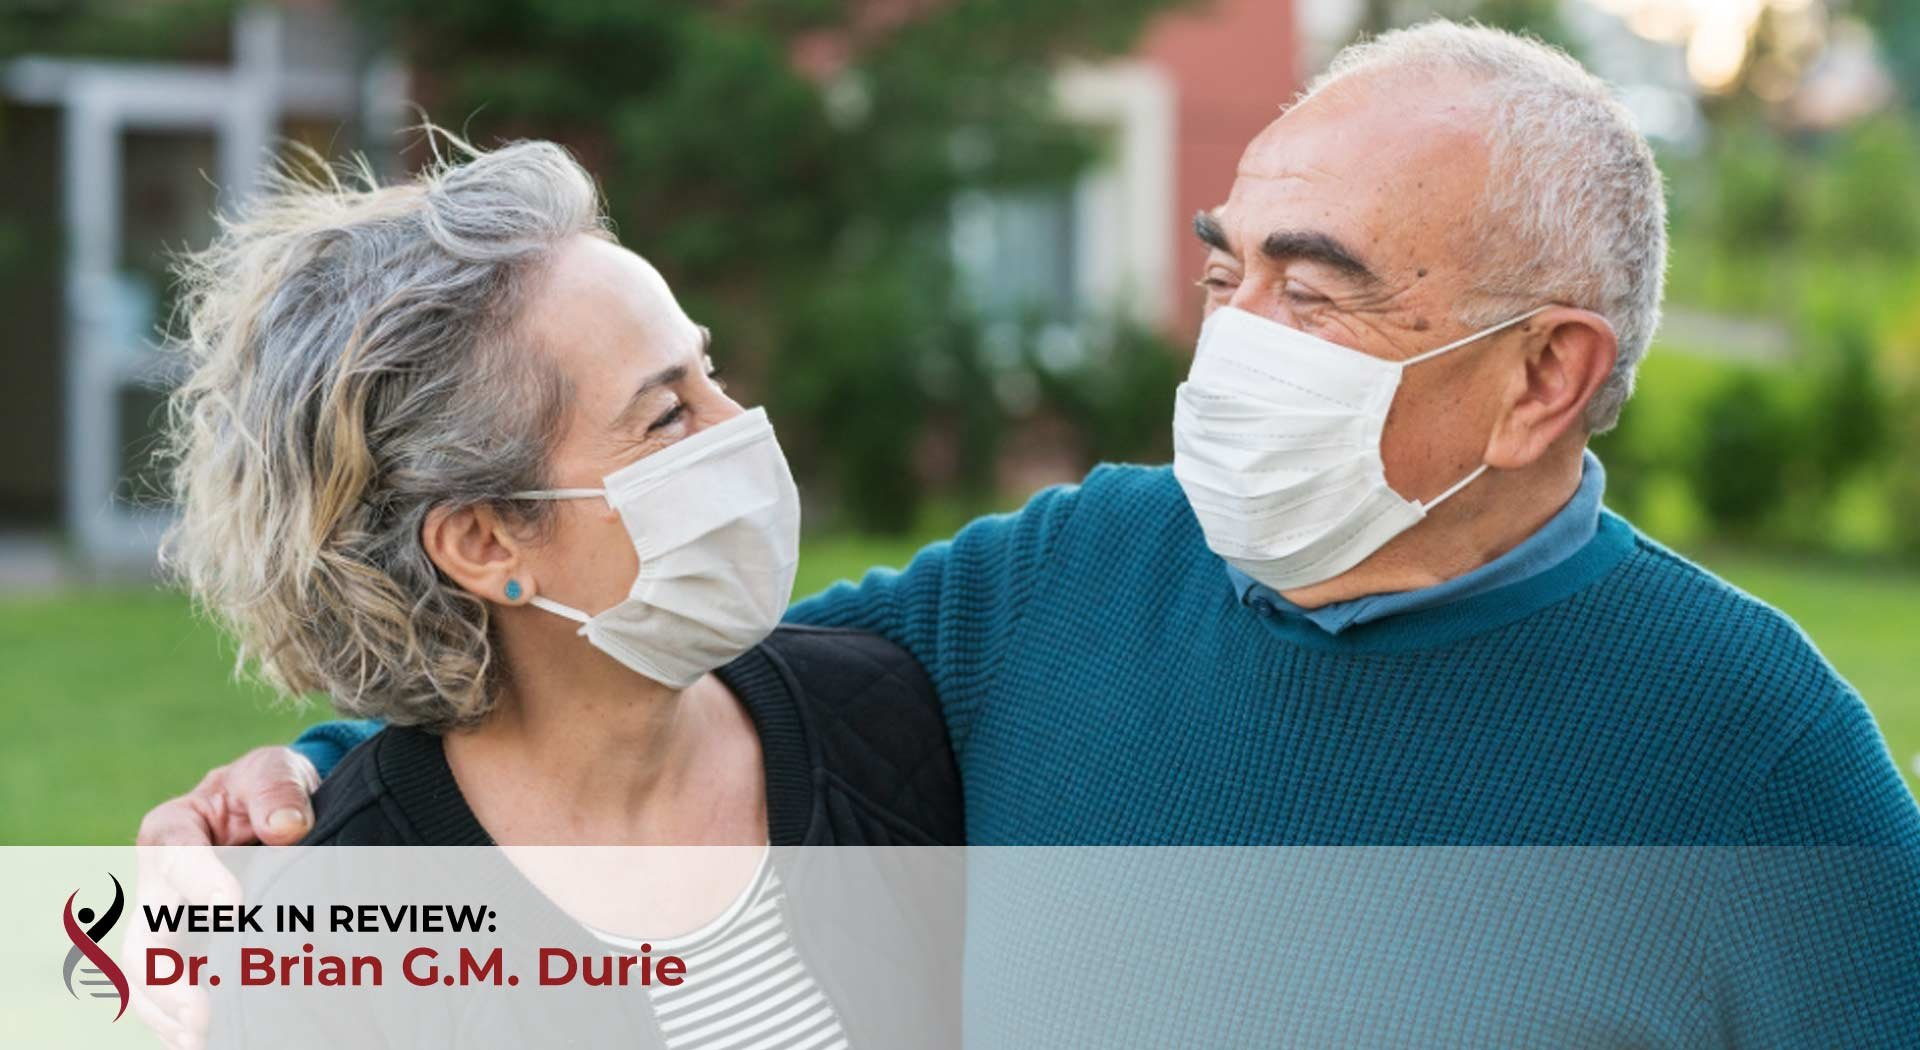 Couple are wearing face masks outdoors